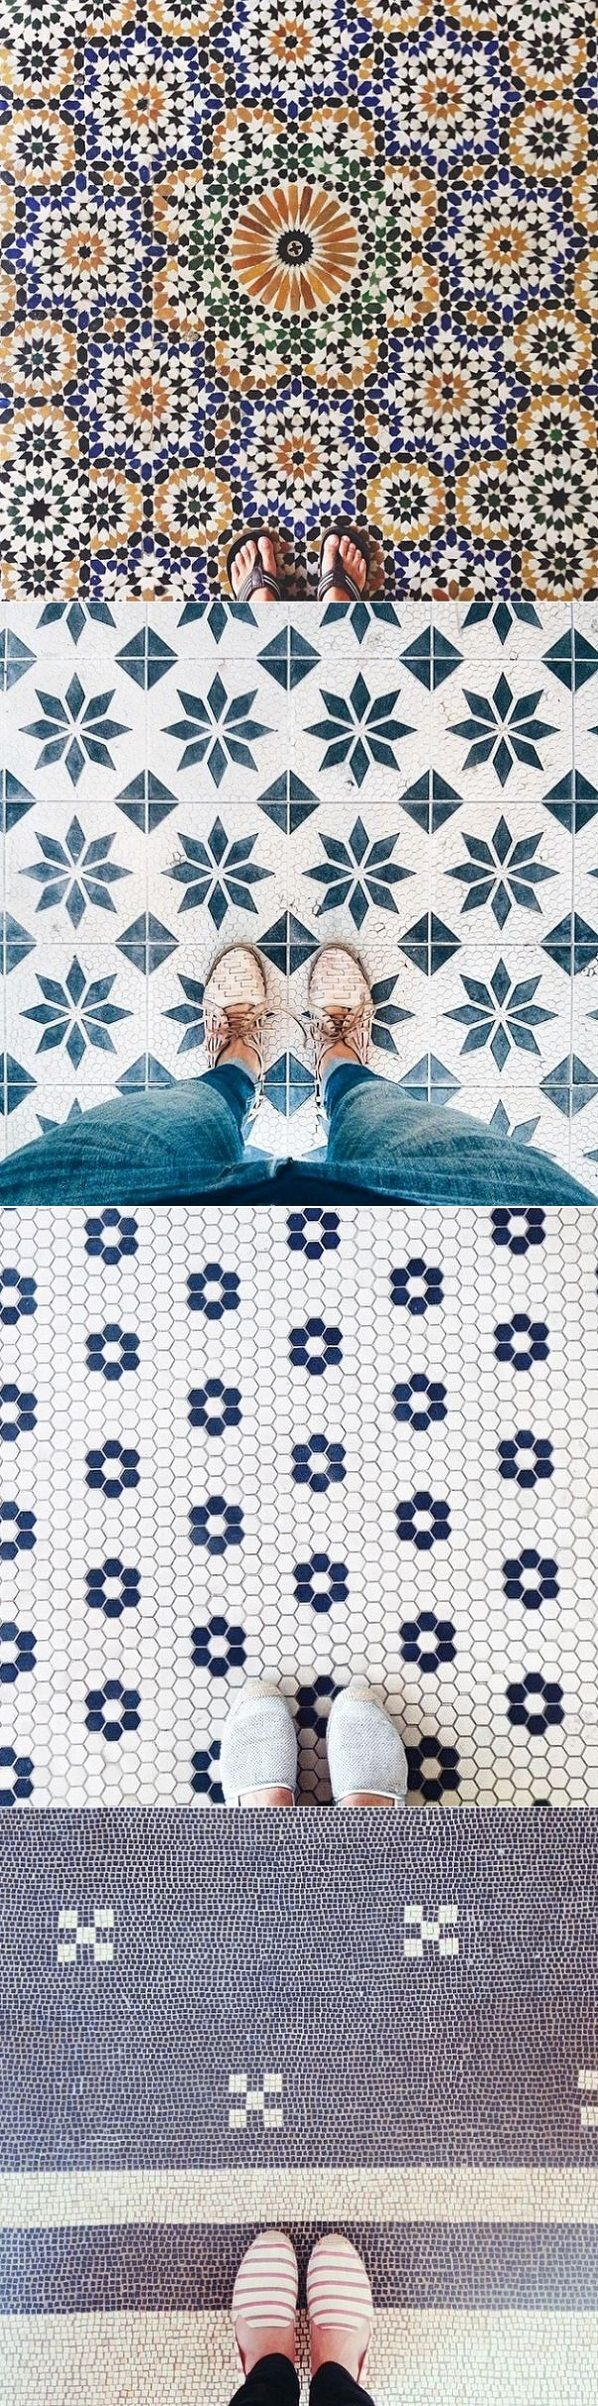 #Tiles #Pattern #Patterned #Texture #Floor